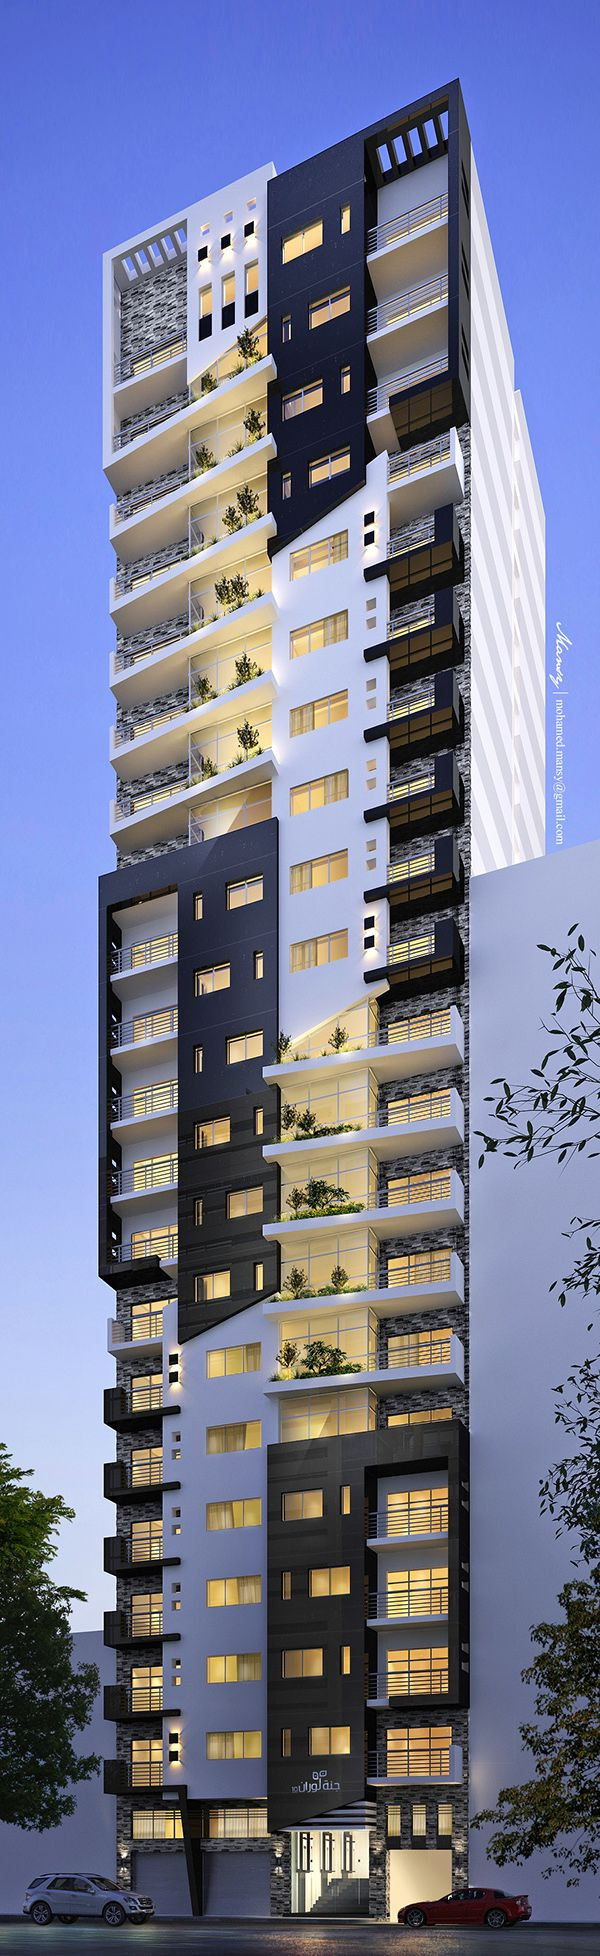 Apartment Building Elevation loran high-rise residential apartment building on behance | luxury